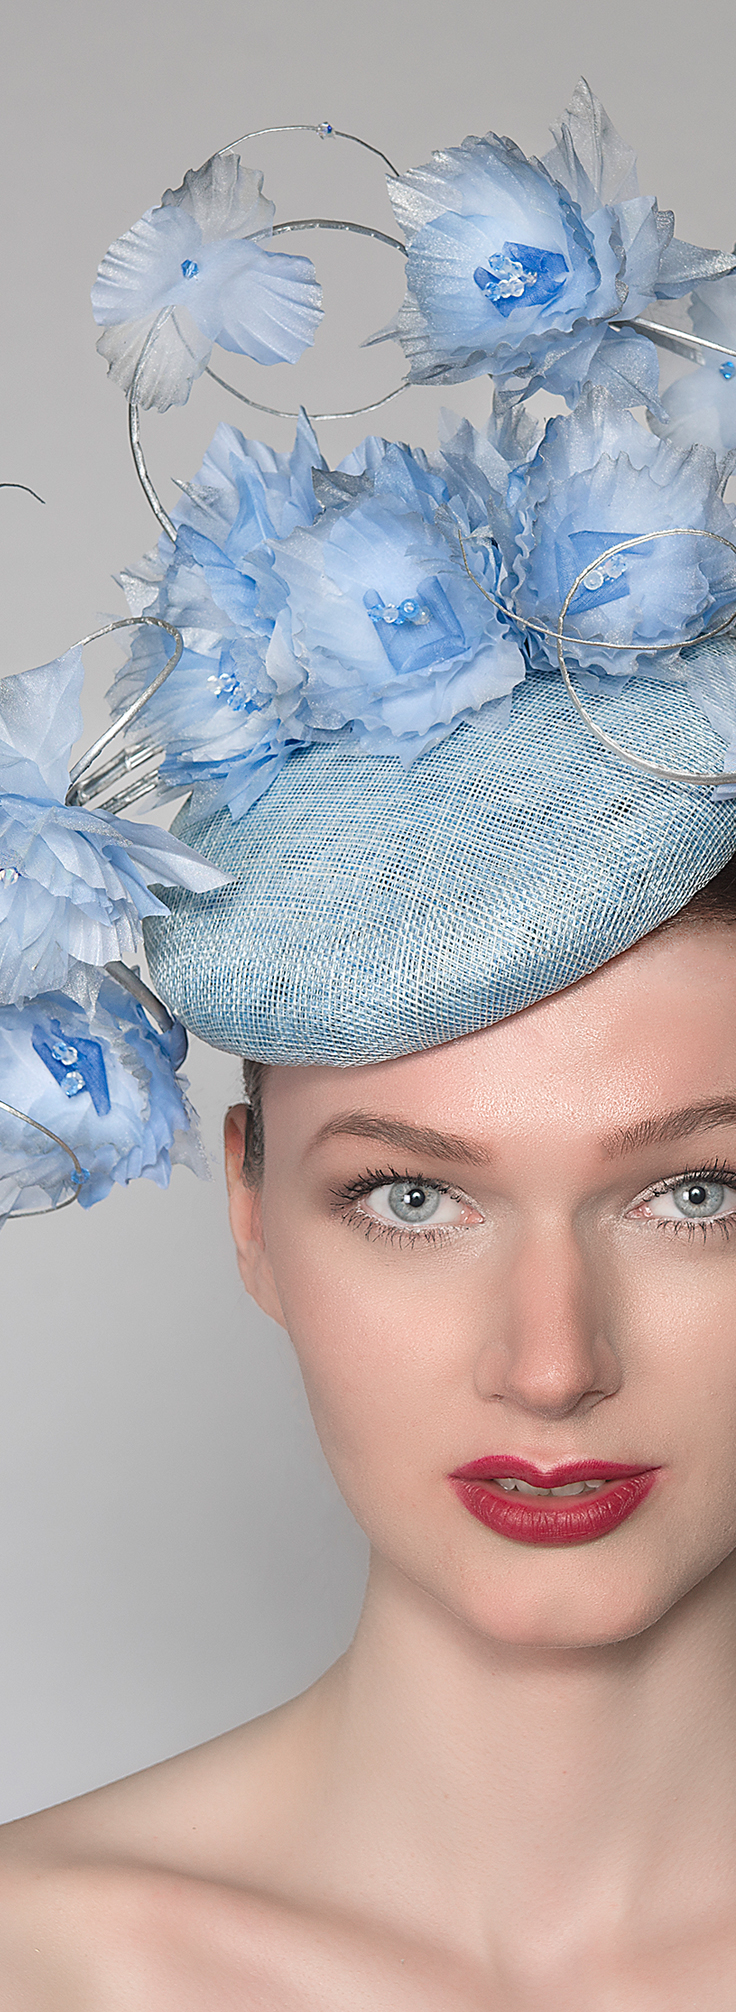 Handmade Designer Hats and Headpieces for Royal Ascot, Kentucky Derby, Dubai World Cup, Melbourne Cup and other Races, Mother of the Bride, or Weddings. Couture Millinery. Amazing Hats. #millinery #bighats #kentuckyderby #fashion #fashionista #ascot #fashiononthefield #fotf #hats #fascinators #fashionaddict #frocktober